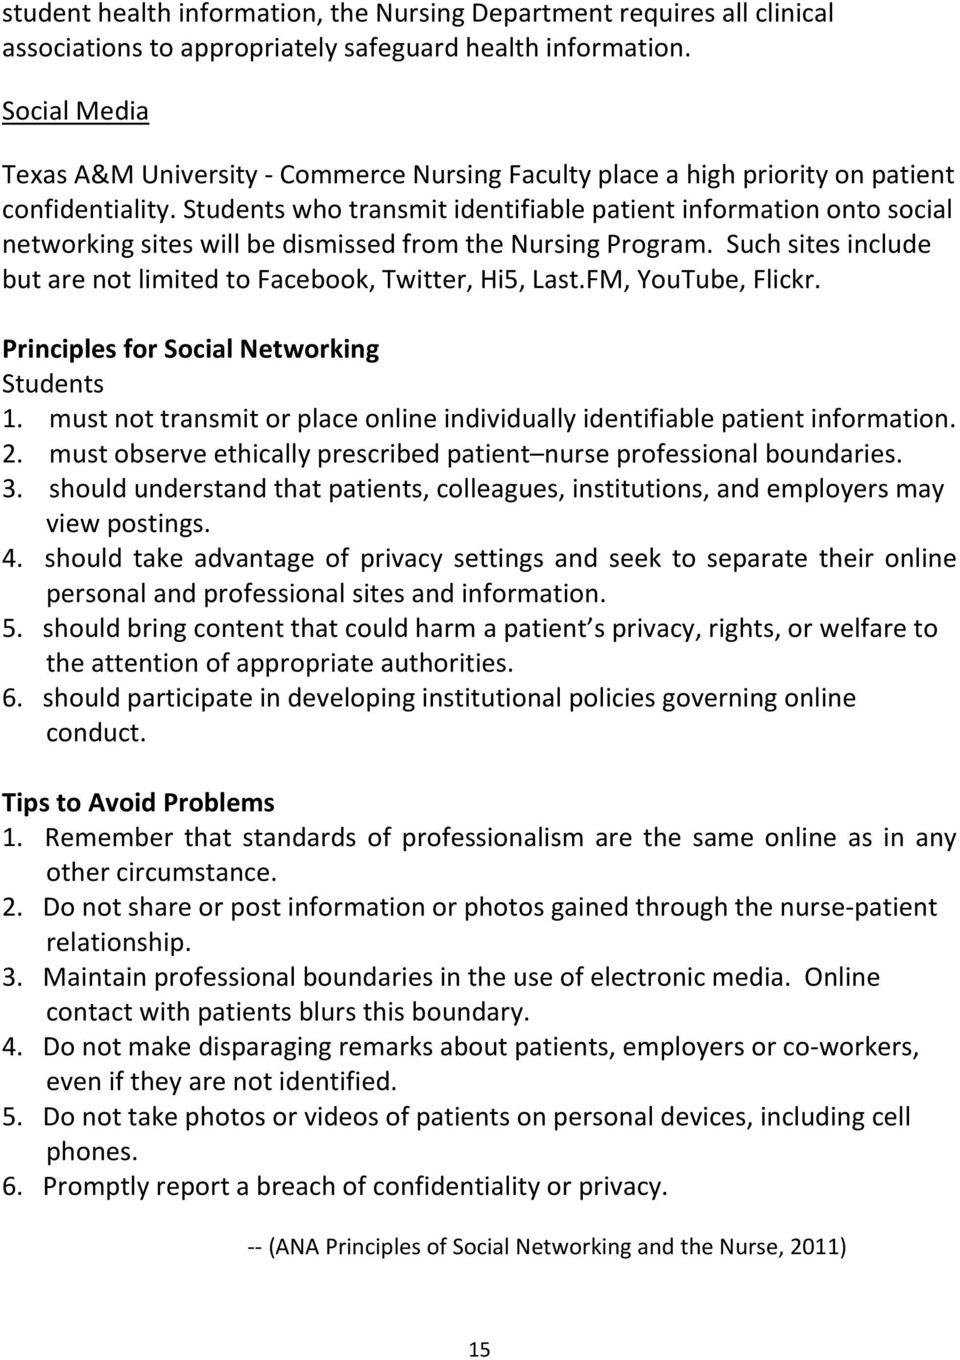 Students who transmit identifiable patient information onto social networking sites will be dismissed from the Nursing Program. Such sites include but are not limited to Facebook, Twitter, Hi5, Last.